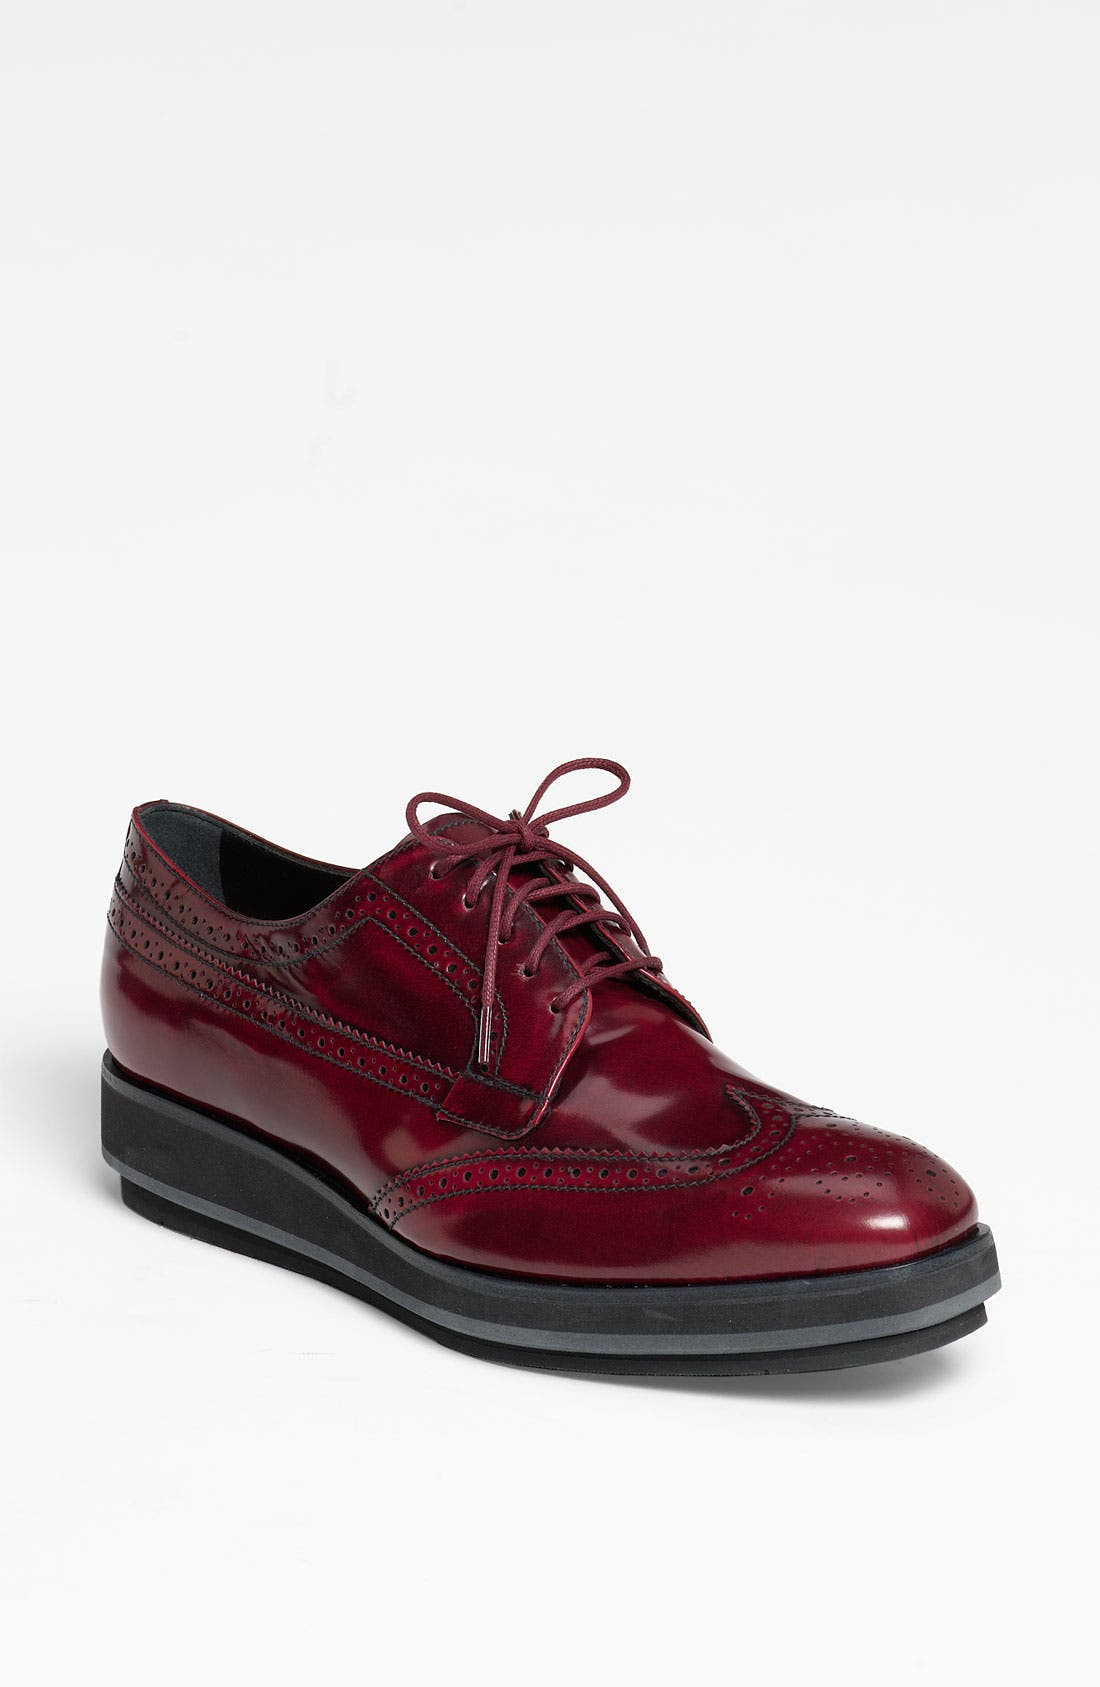 Alternate Image 1 Selected - Prada Brogue Platform Oxford